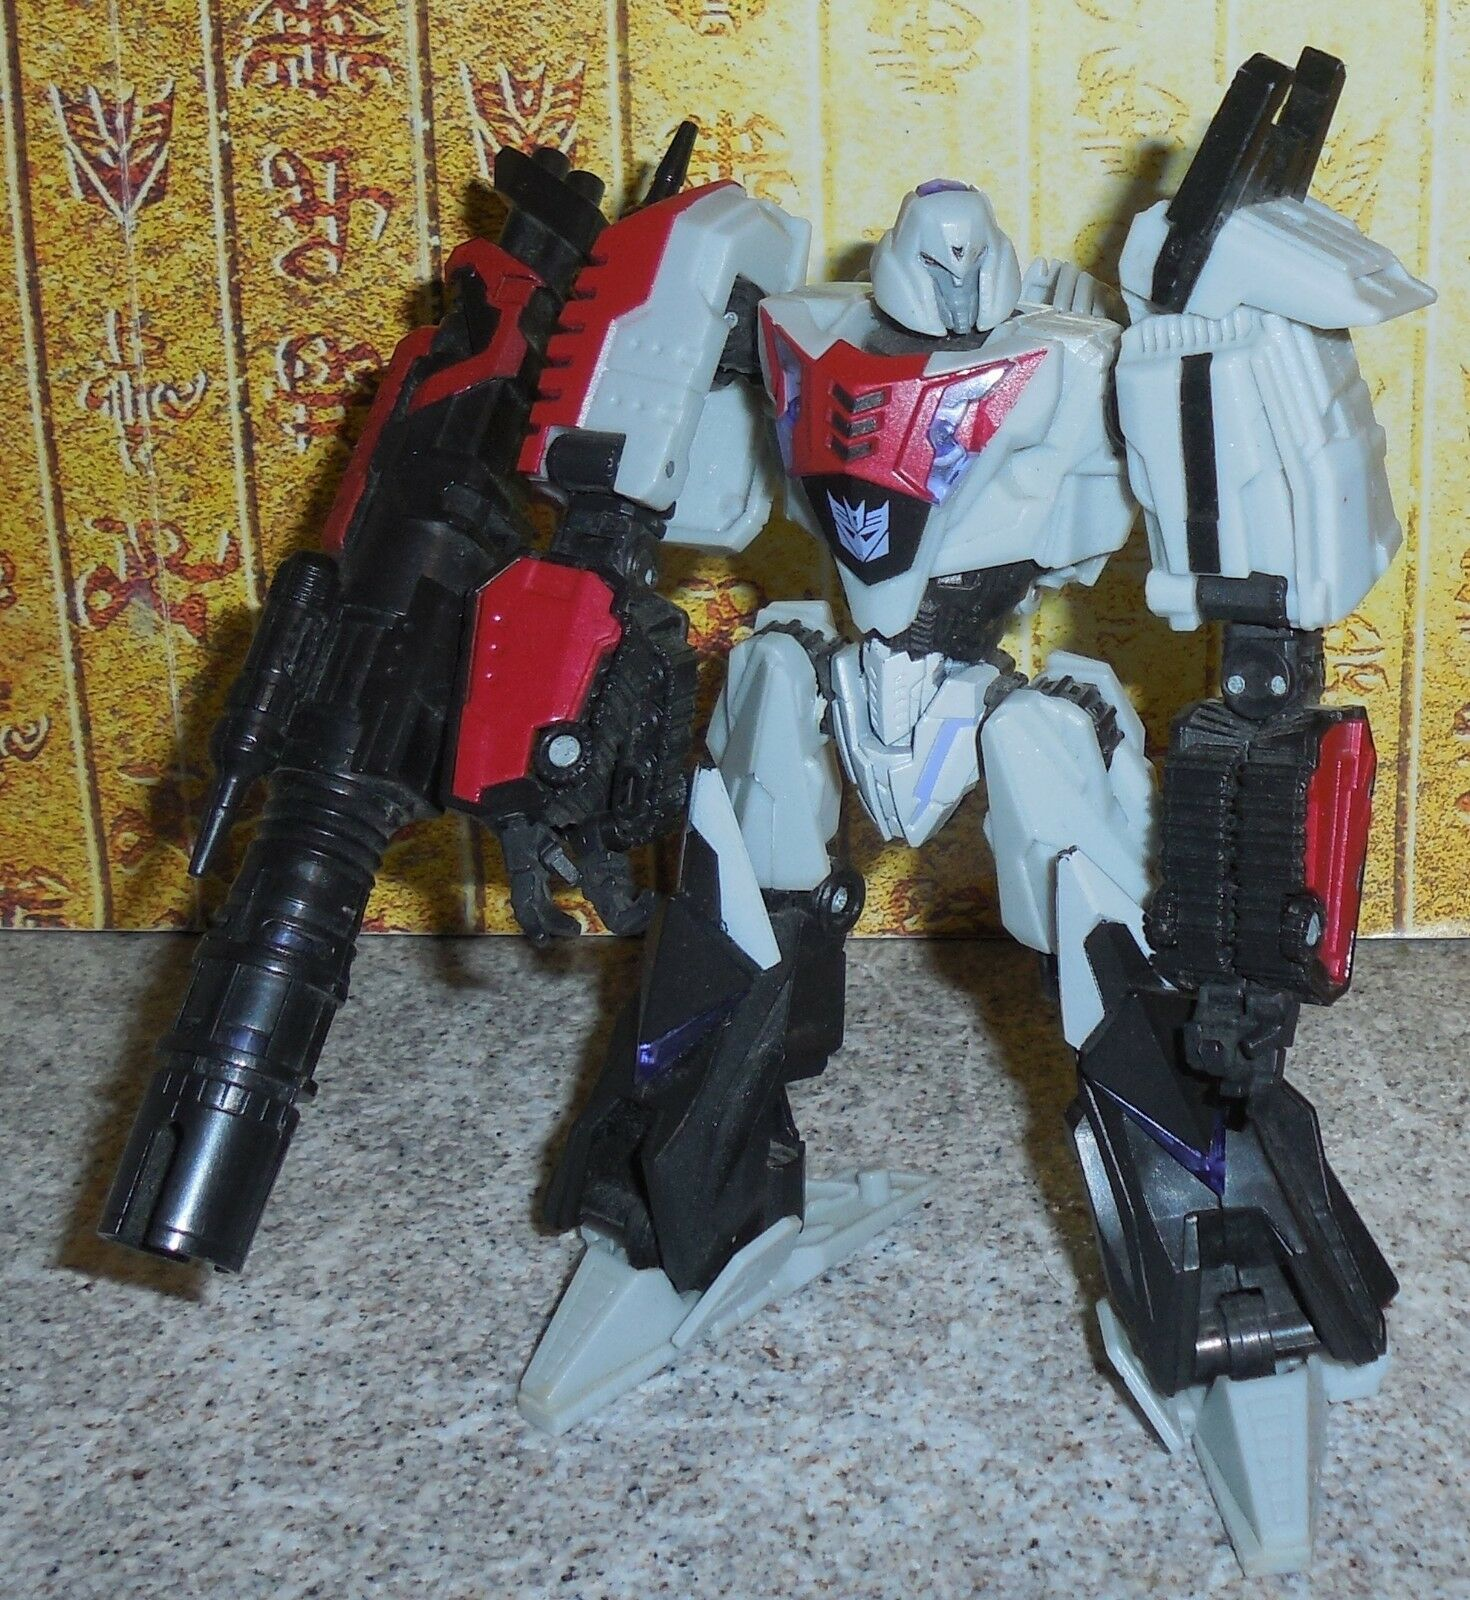 Transformers Generations WFC MEGATRON Deluxe War For Cybertron